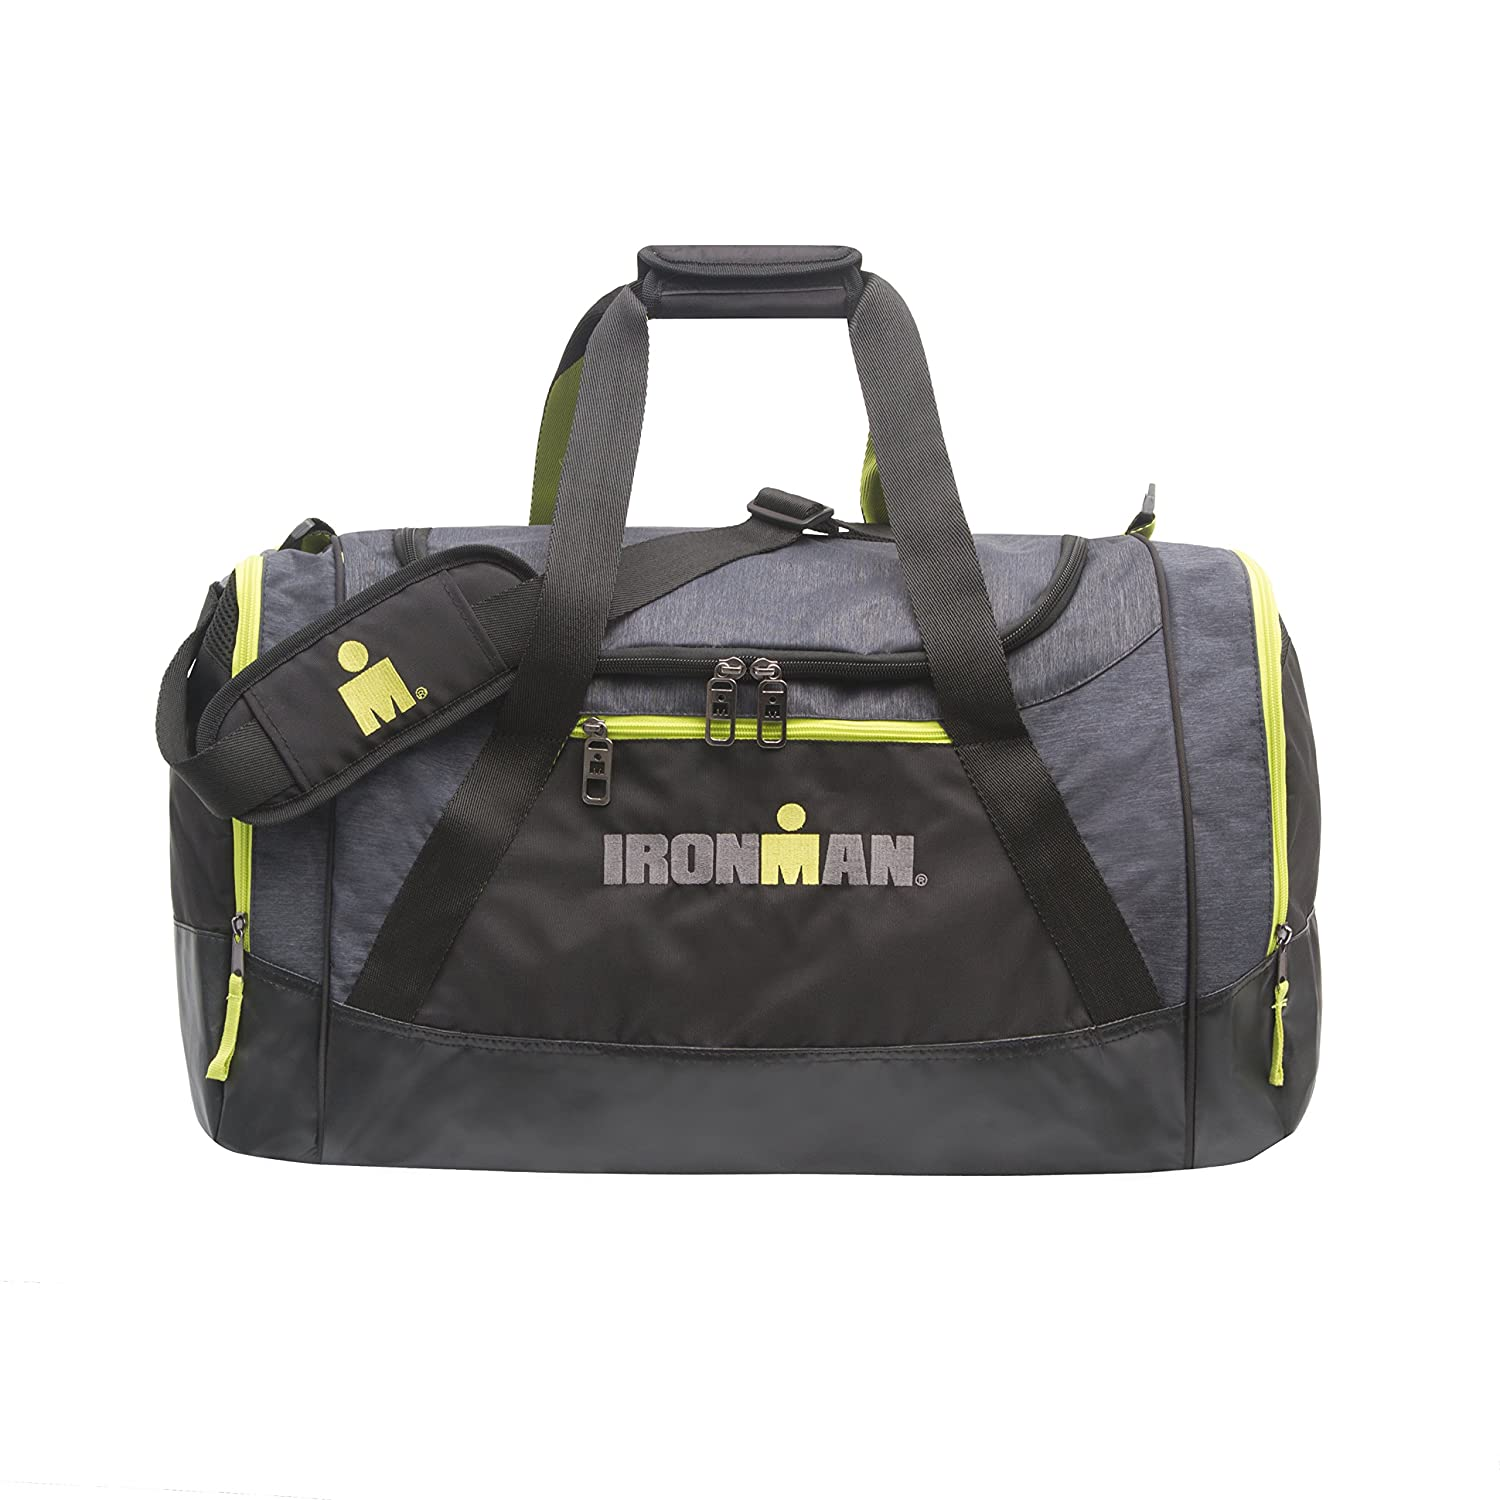 IRONMAN 21 24 Inch Sports Duffle Gym Bag with Floating Shoe Pocket